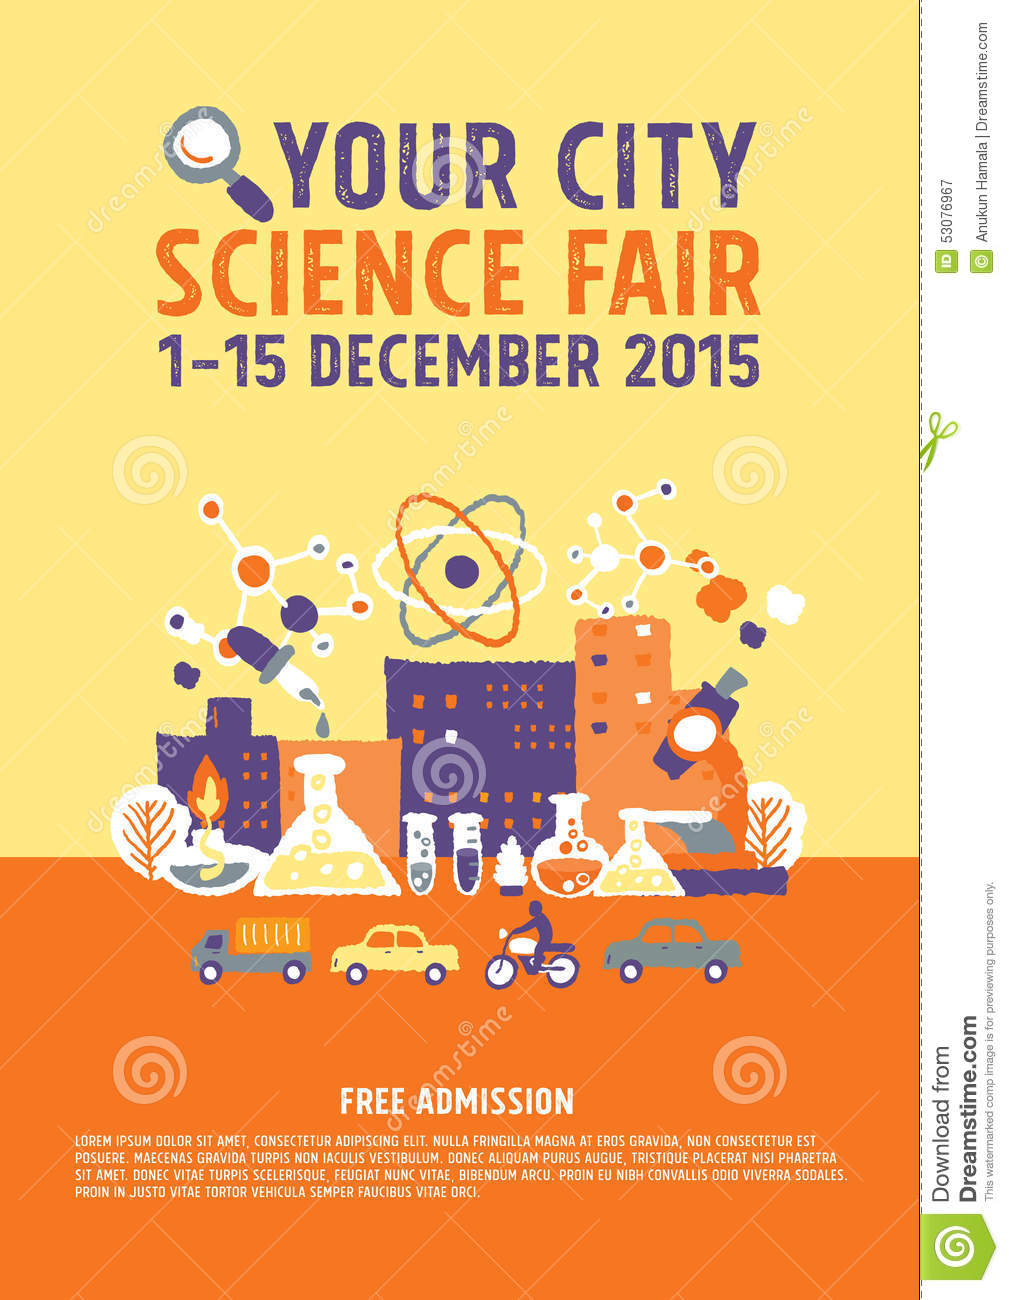 Science Fair poster concept - freehand drawing vector illustration.